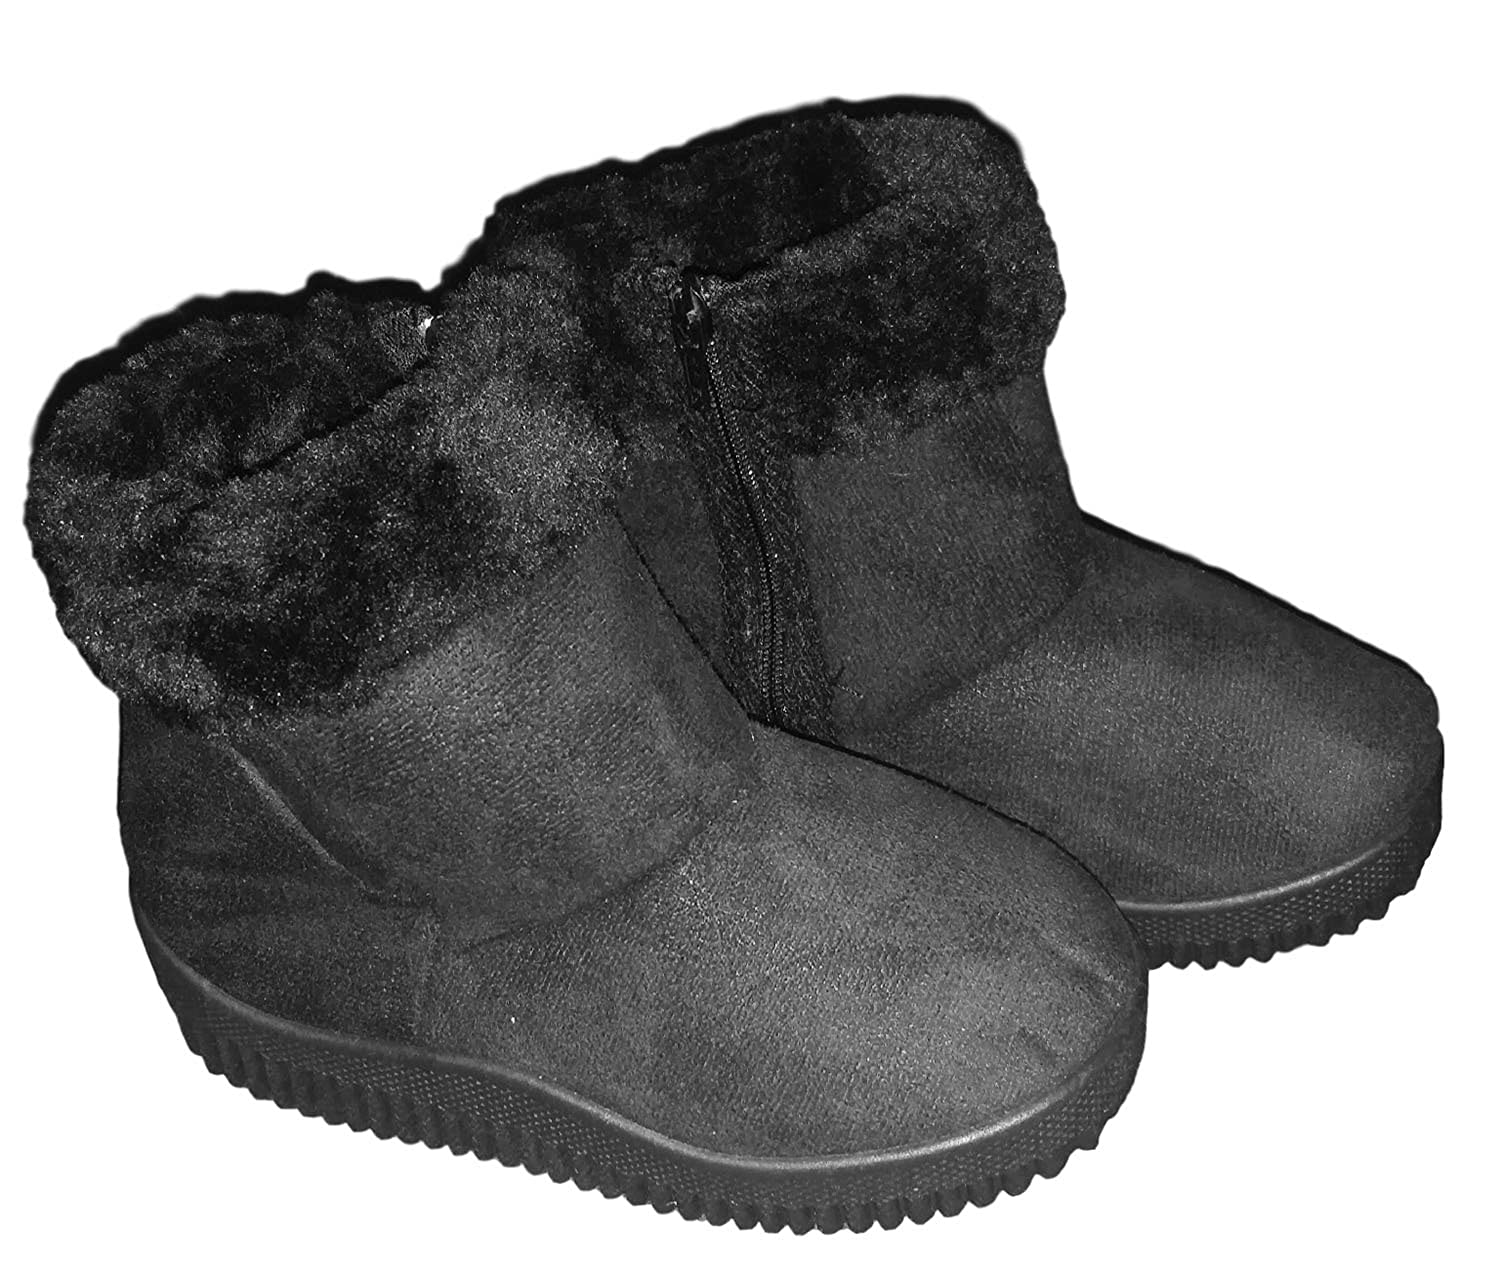 Callie Fashion Boots with Fur Trim for Baby Toddler Girls BB1588